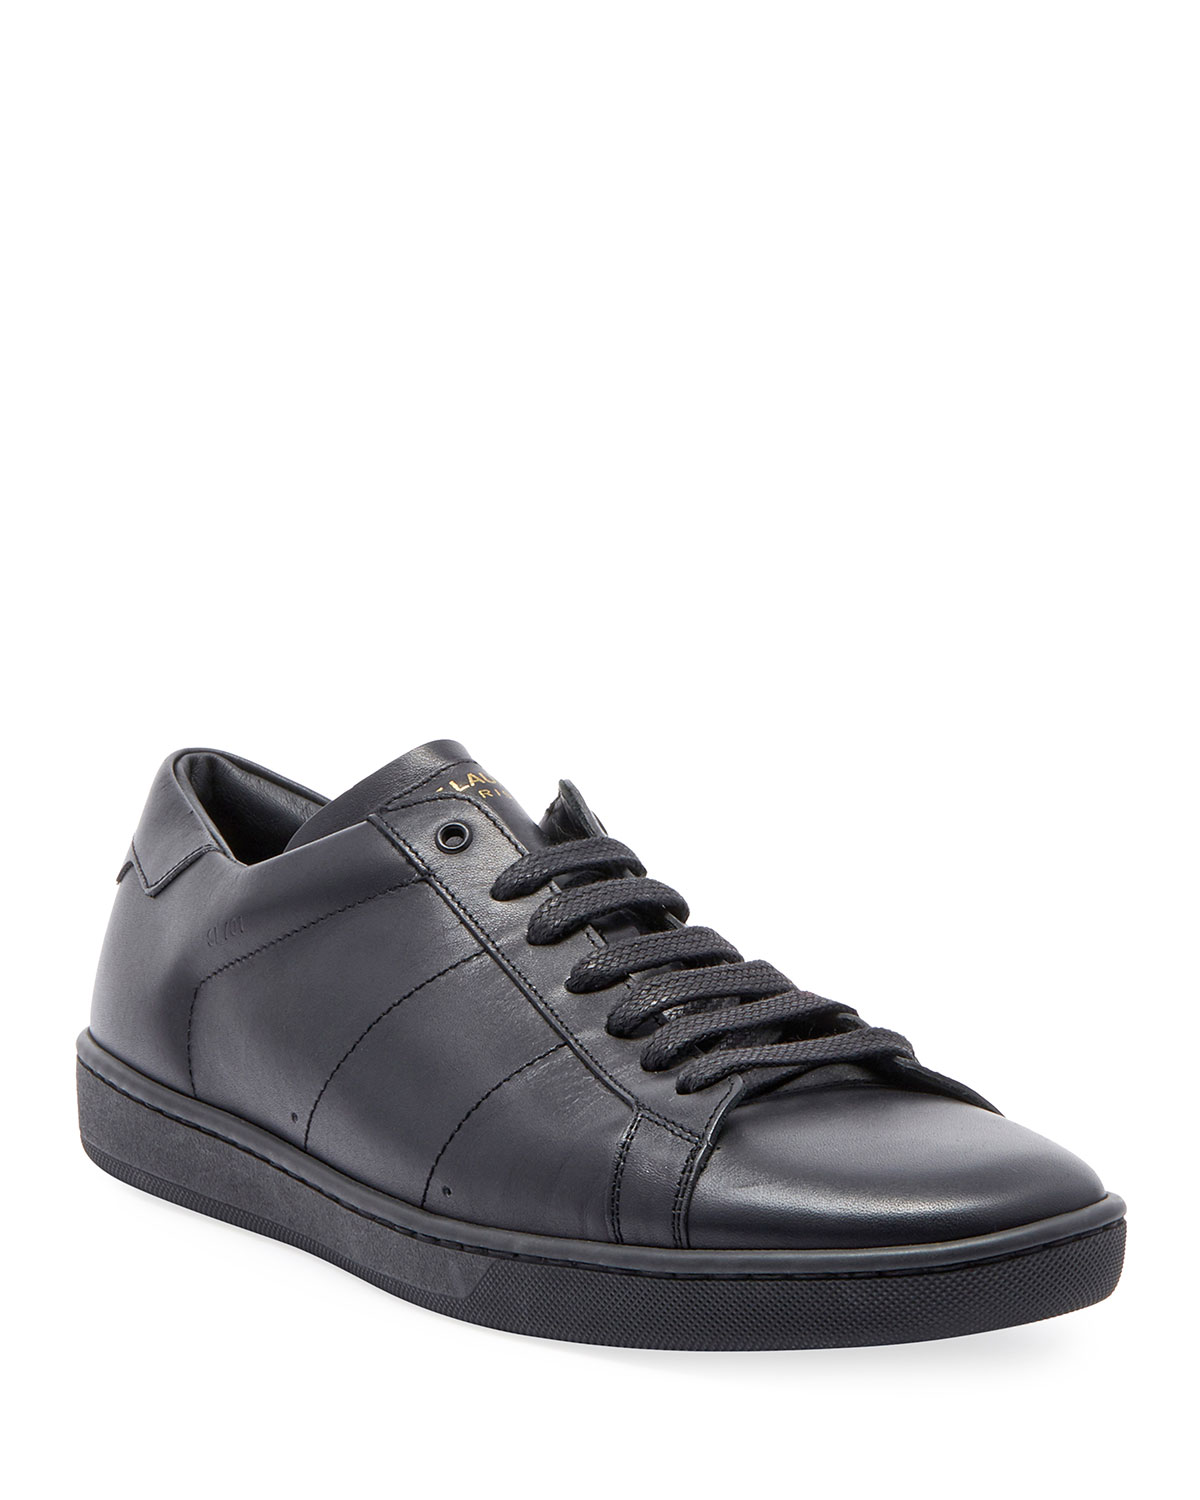 079f20ff5c1 Quick Look. Saint Laurent · Men s SL01 Leather Low-Top Sneakers